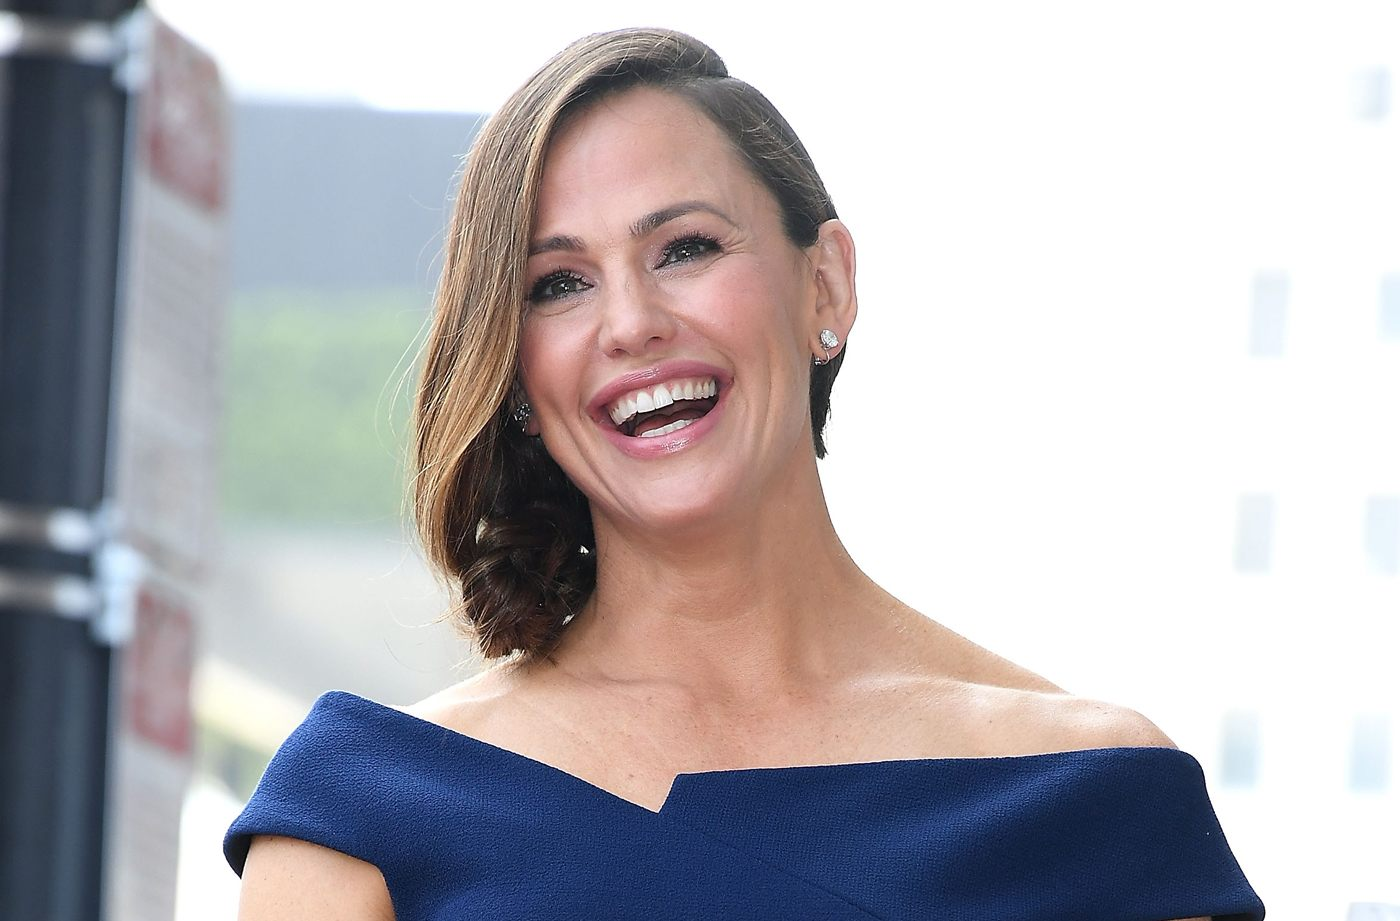 Thumbnail for The straight-up #goals reason Jennifer Garner's Instagram feed is full of ballerinas